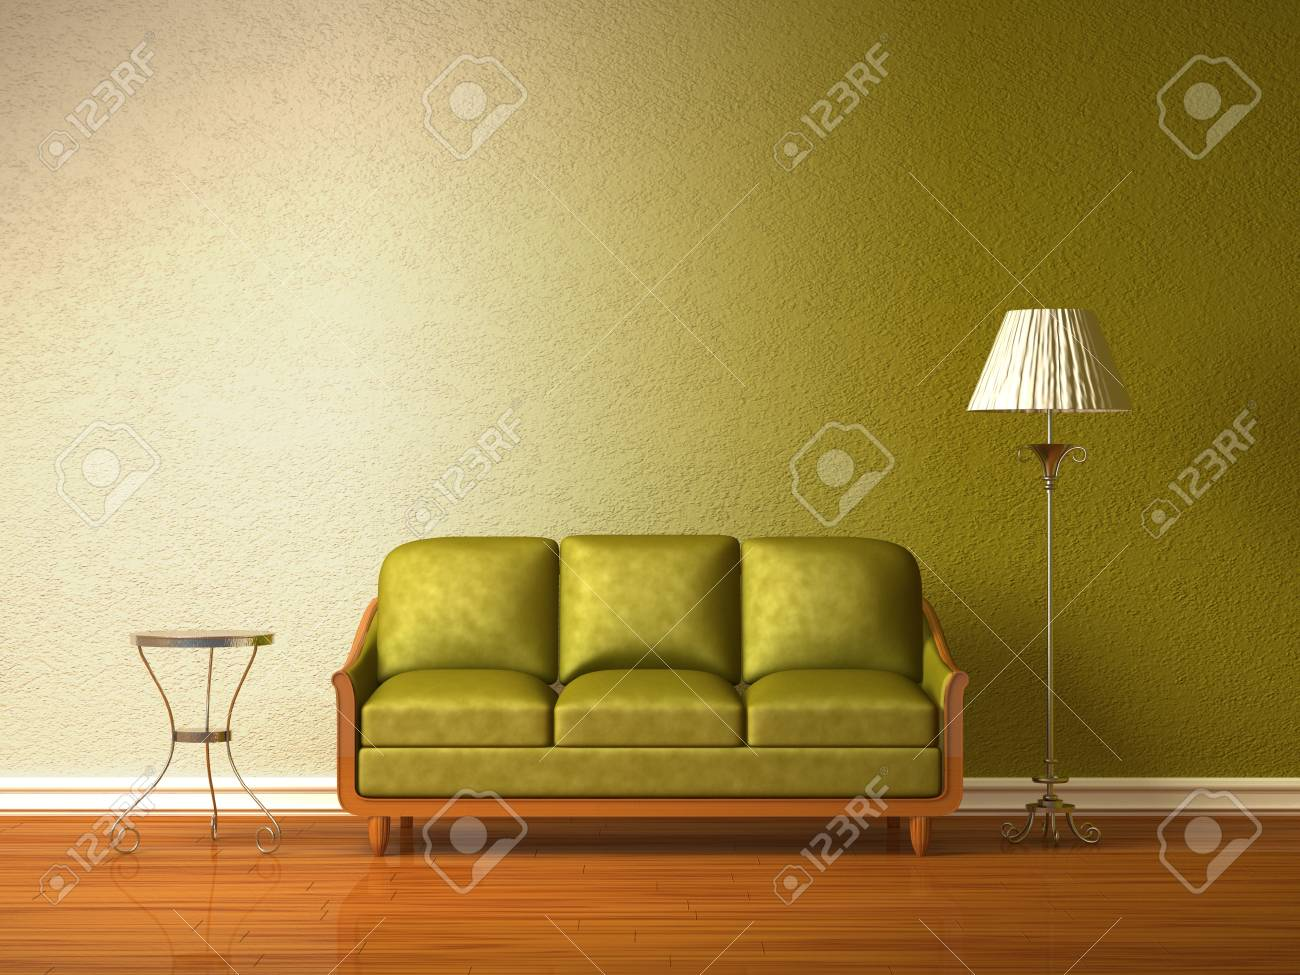 Olive couch with table and standard lamp in olive interior Stock Photo - 13101186